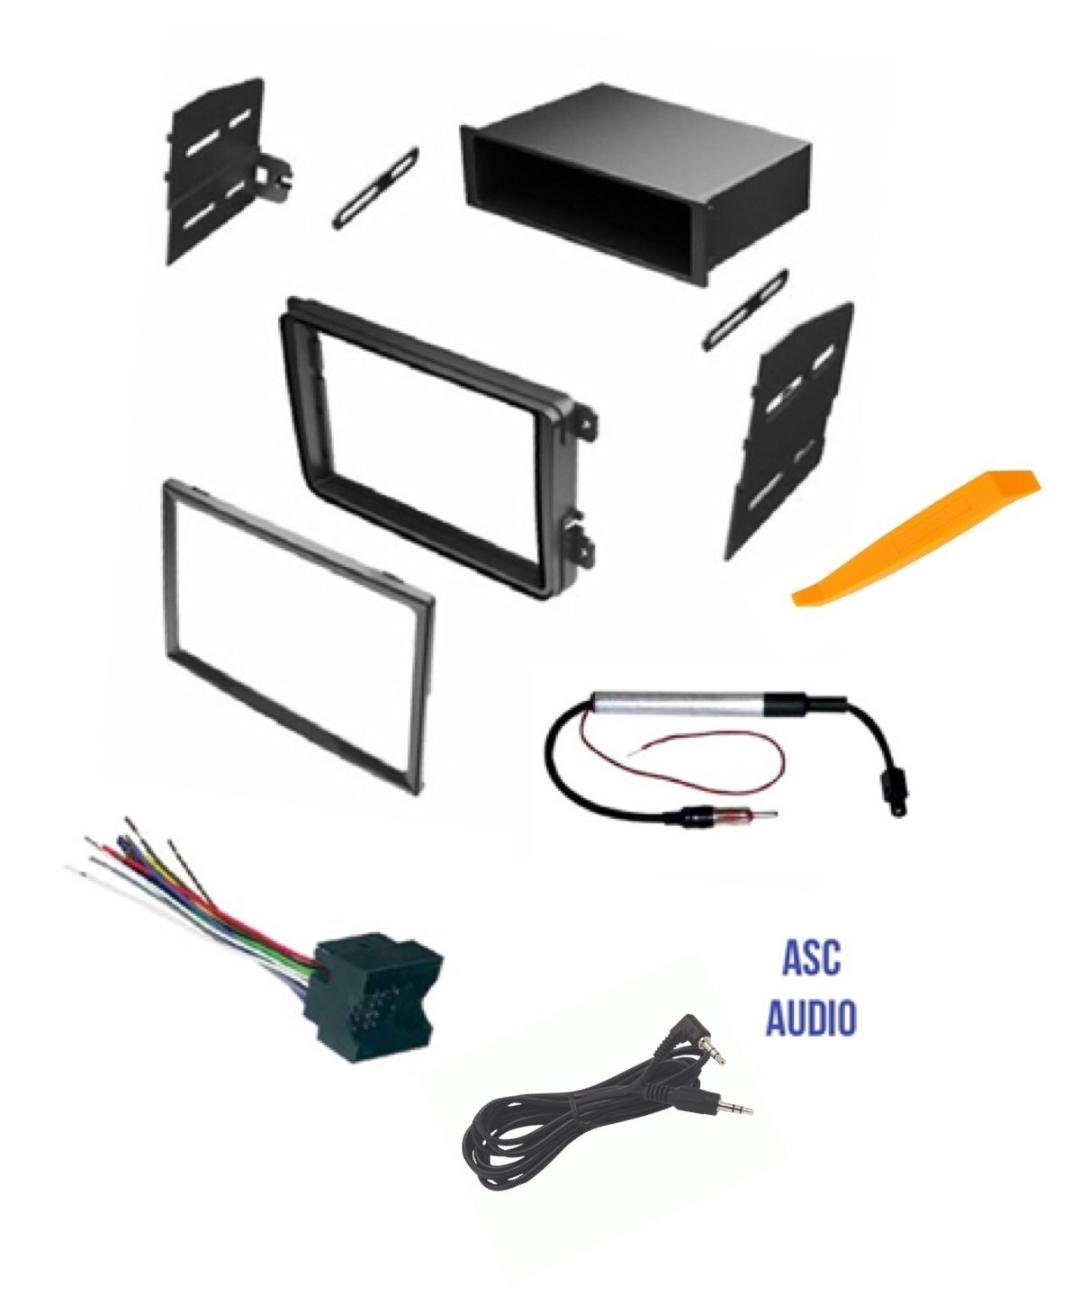 Amazon.com: ASC Car Stereo Radio Dash Kit, Wire Harness, and Antenna  Adapter for VW Volkswagen: 2012-2015 Beetle, 09-14 CC, 07-14 Eos, 10-14  Golf, 06-14 GTI ...